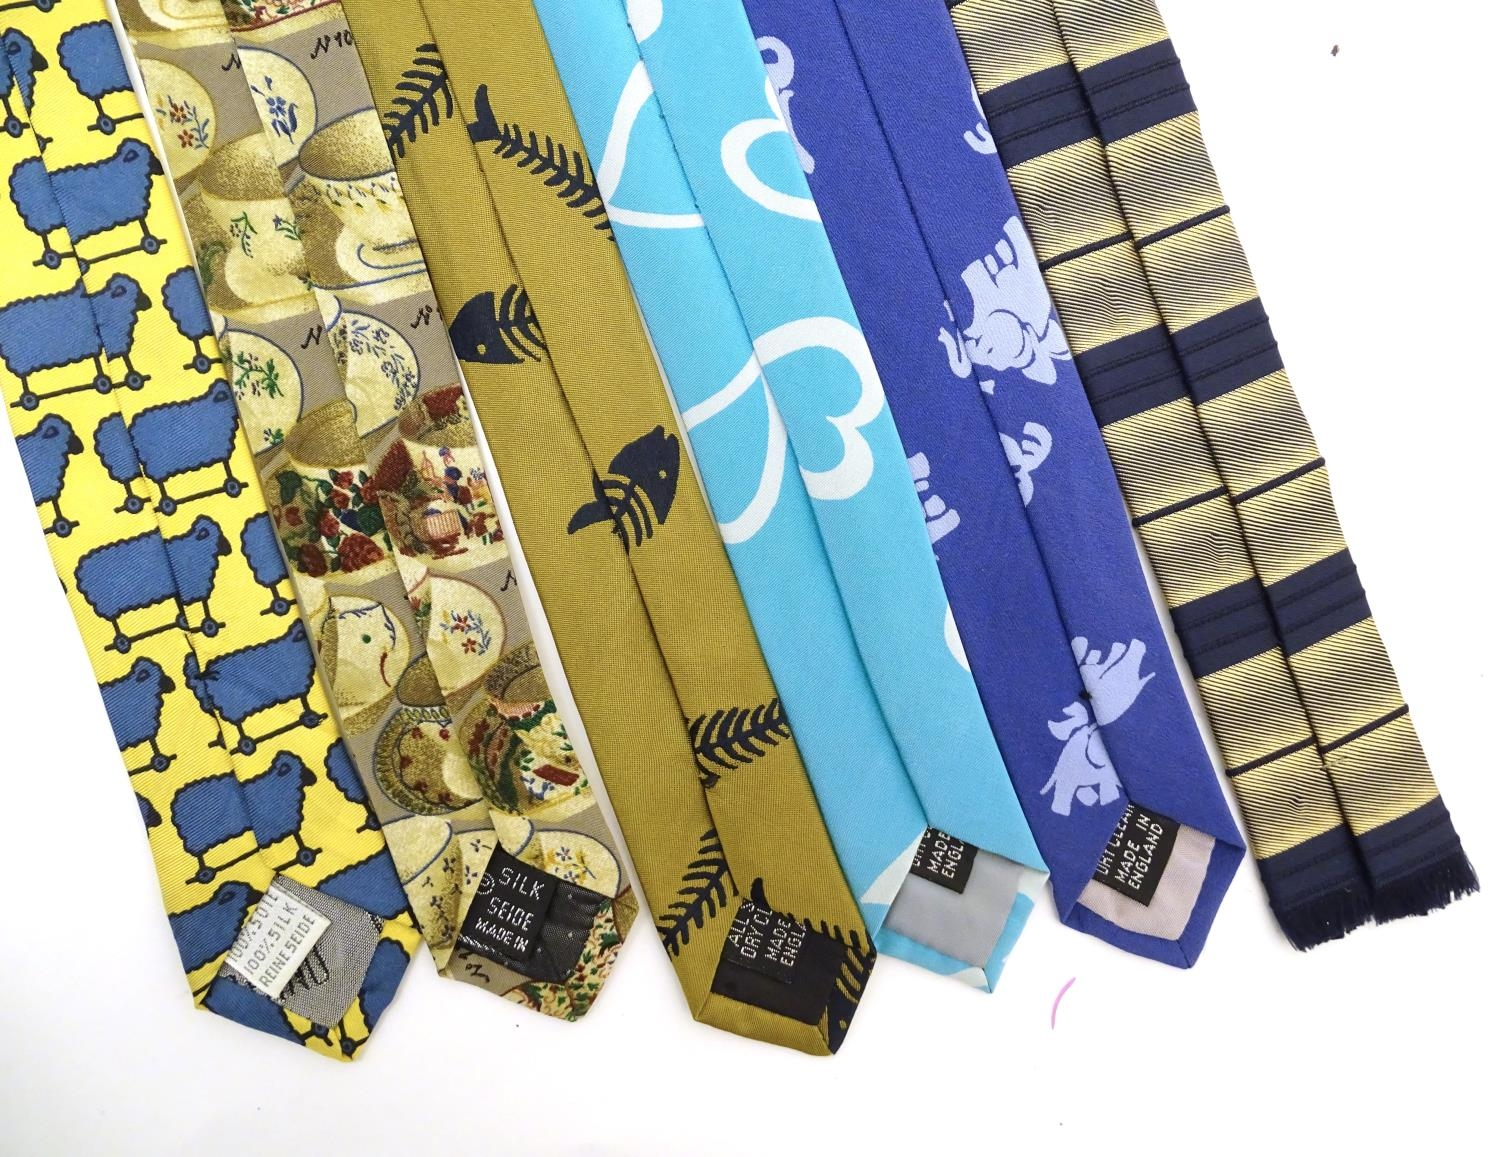 Vintage clothing/ fashion: 6 silk ties in various colours and patterns by Yves Saint Laurent, Nicole - Image 2 of 10